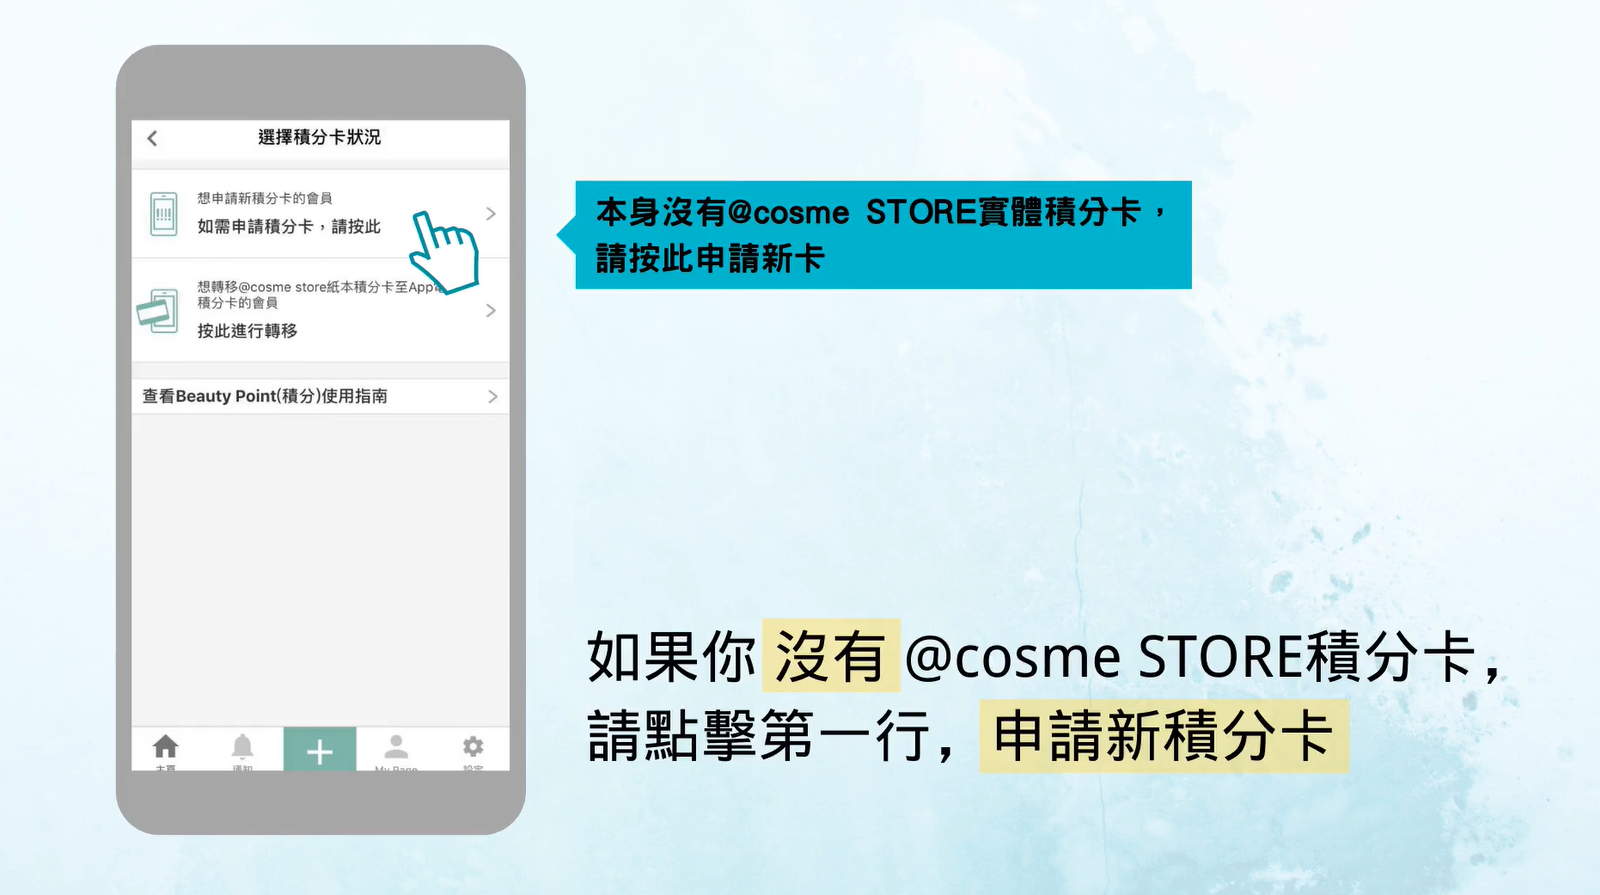 @cosme store point card guidance 3